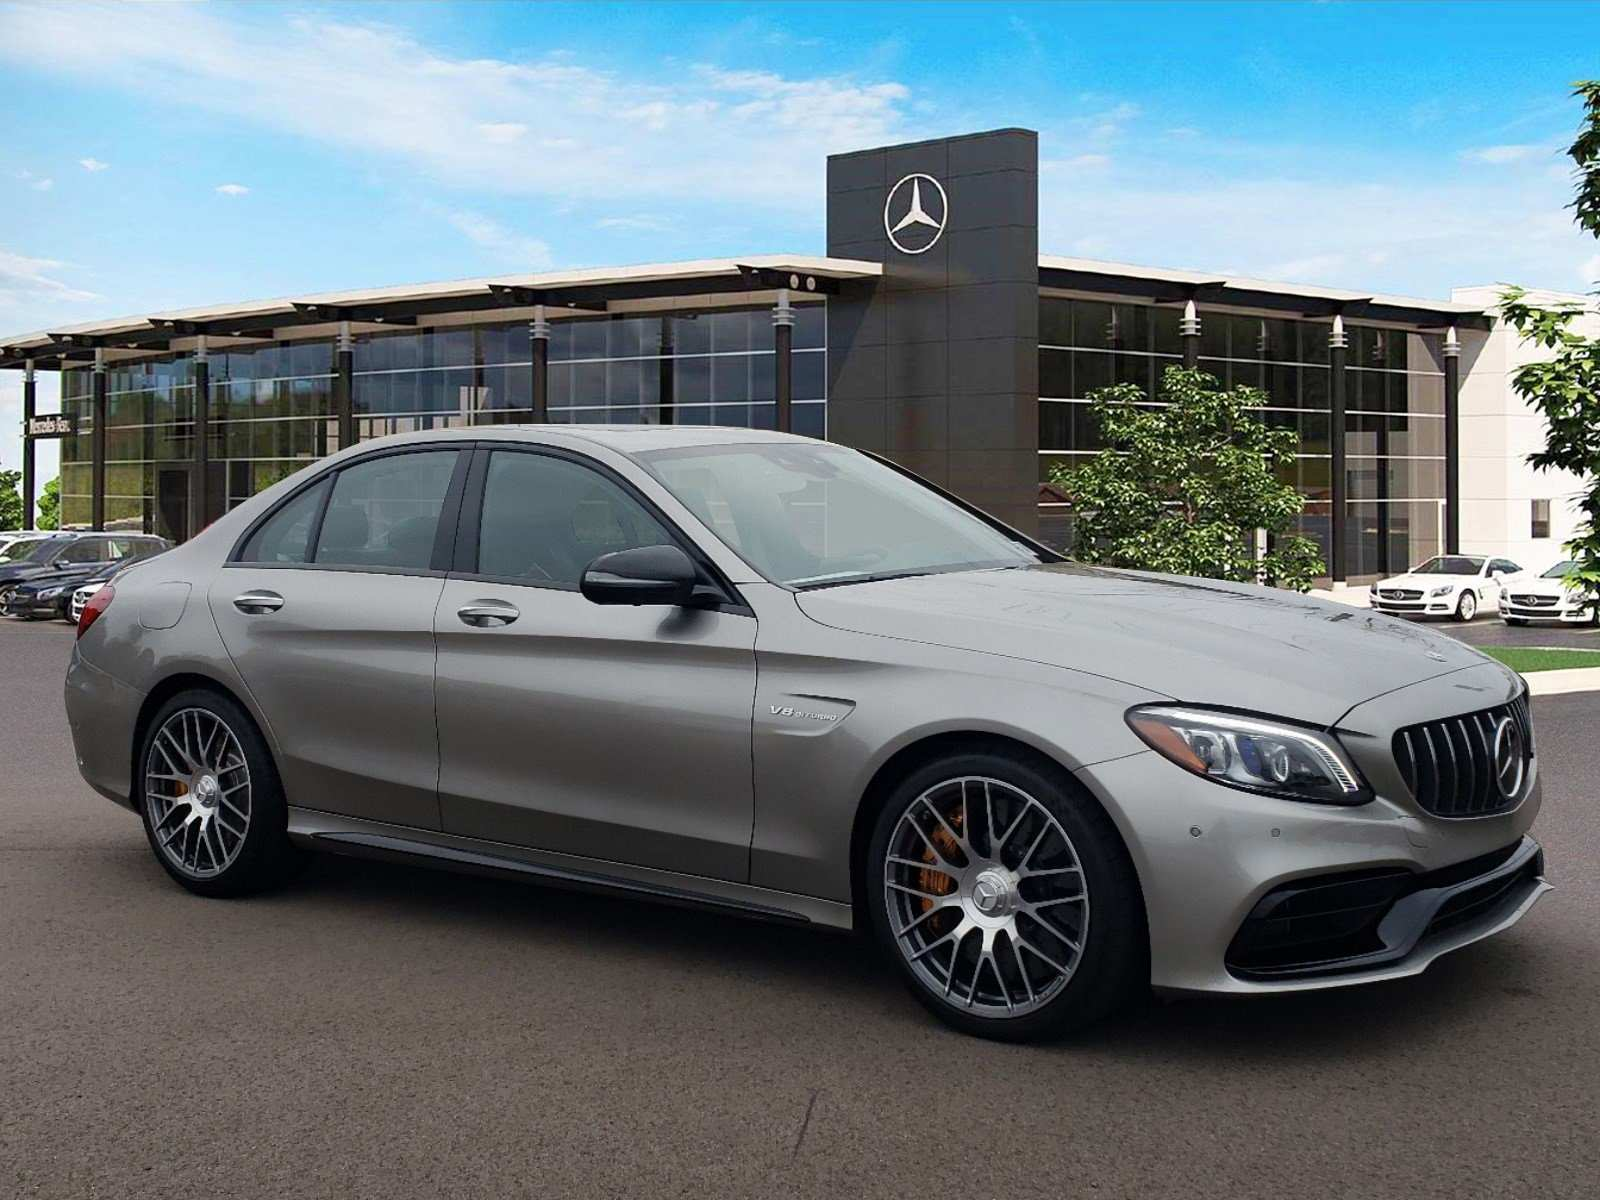 84 The Best 2019 Mercedes C Class Price And Release Date